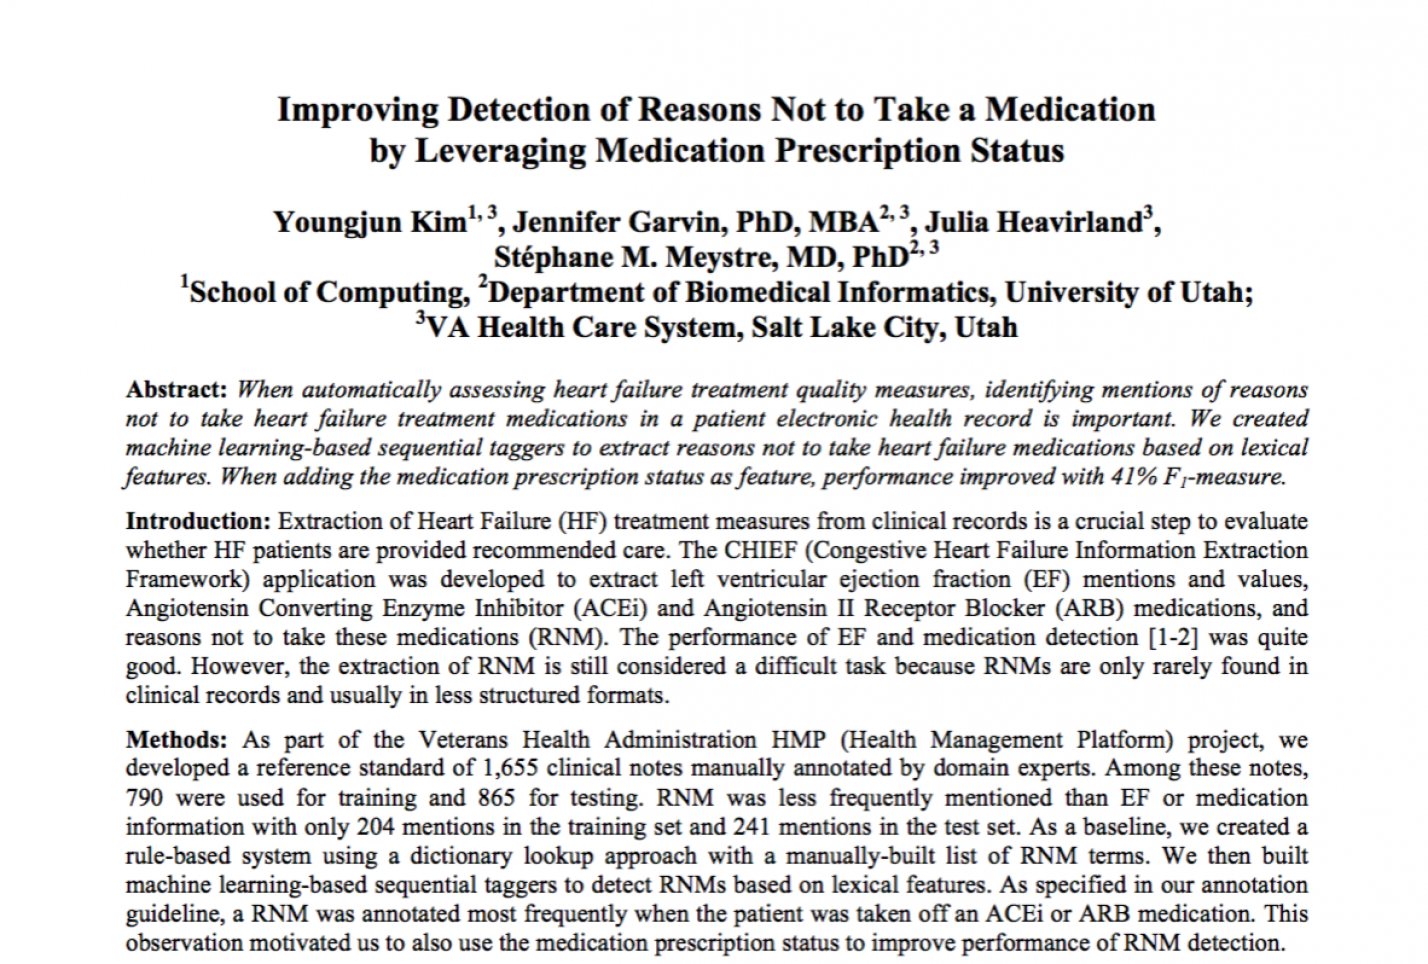 Improving Detection of Reasons Not to Take a Medication by Leveraging Medication Prescription Status